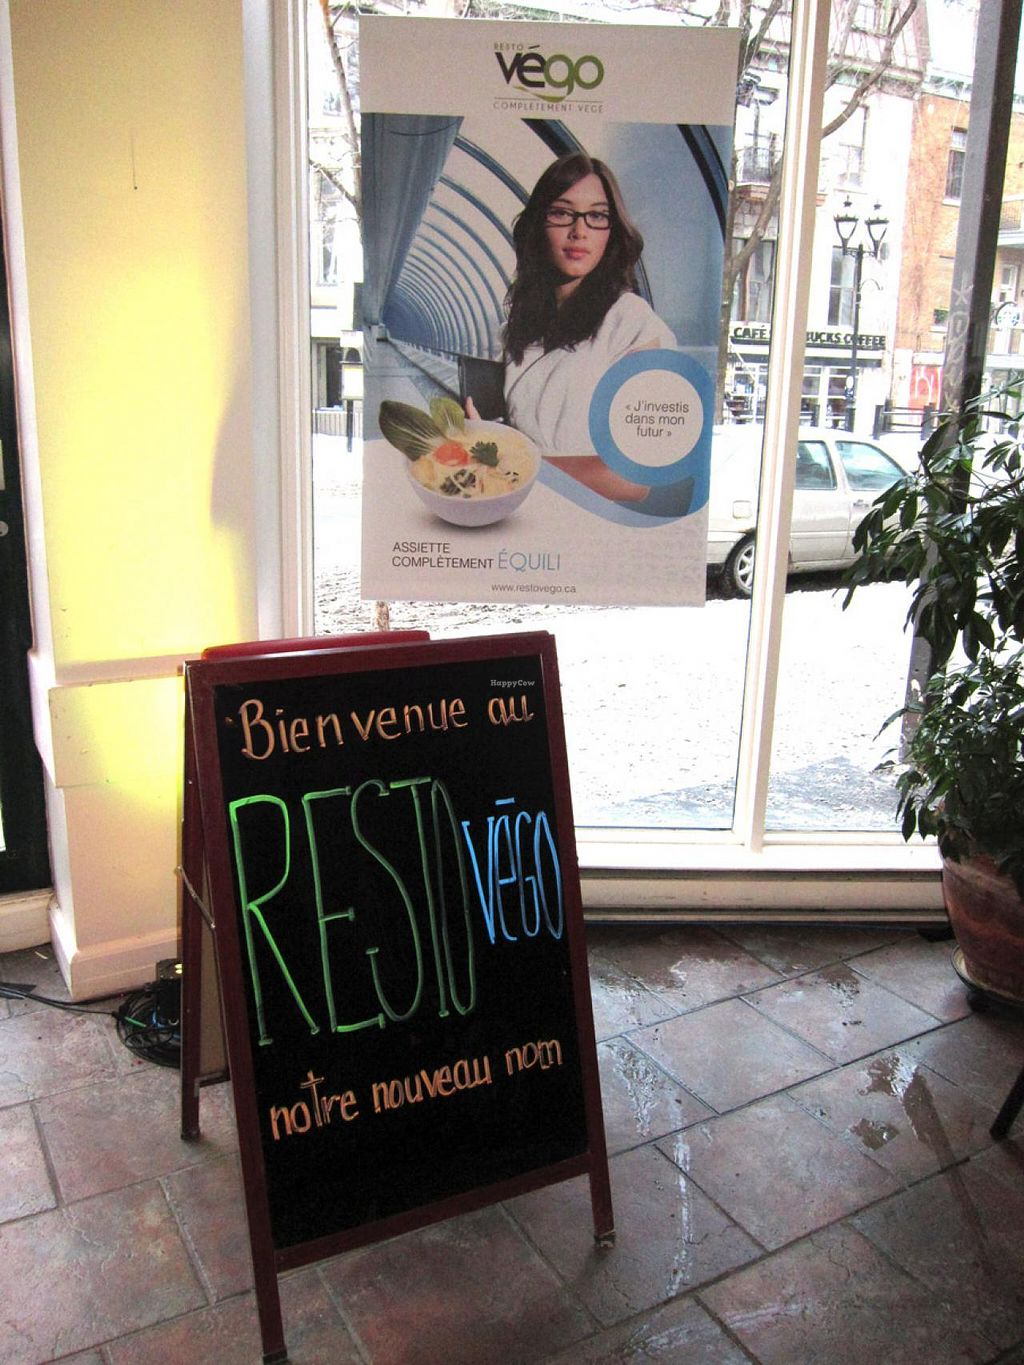 "Photo of CLOSED: Commensal - St Denis  by <a href=""/members/profile/baratron"">baratron</a> <br/>Commensal St Denis rebranded as Resto Végo - sign says 'Welcome to Resto Végo, our new name' <br/> January 29, 2014  - <a href='/contact/abuse/image/1372/63367'>Report</a>"